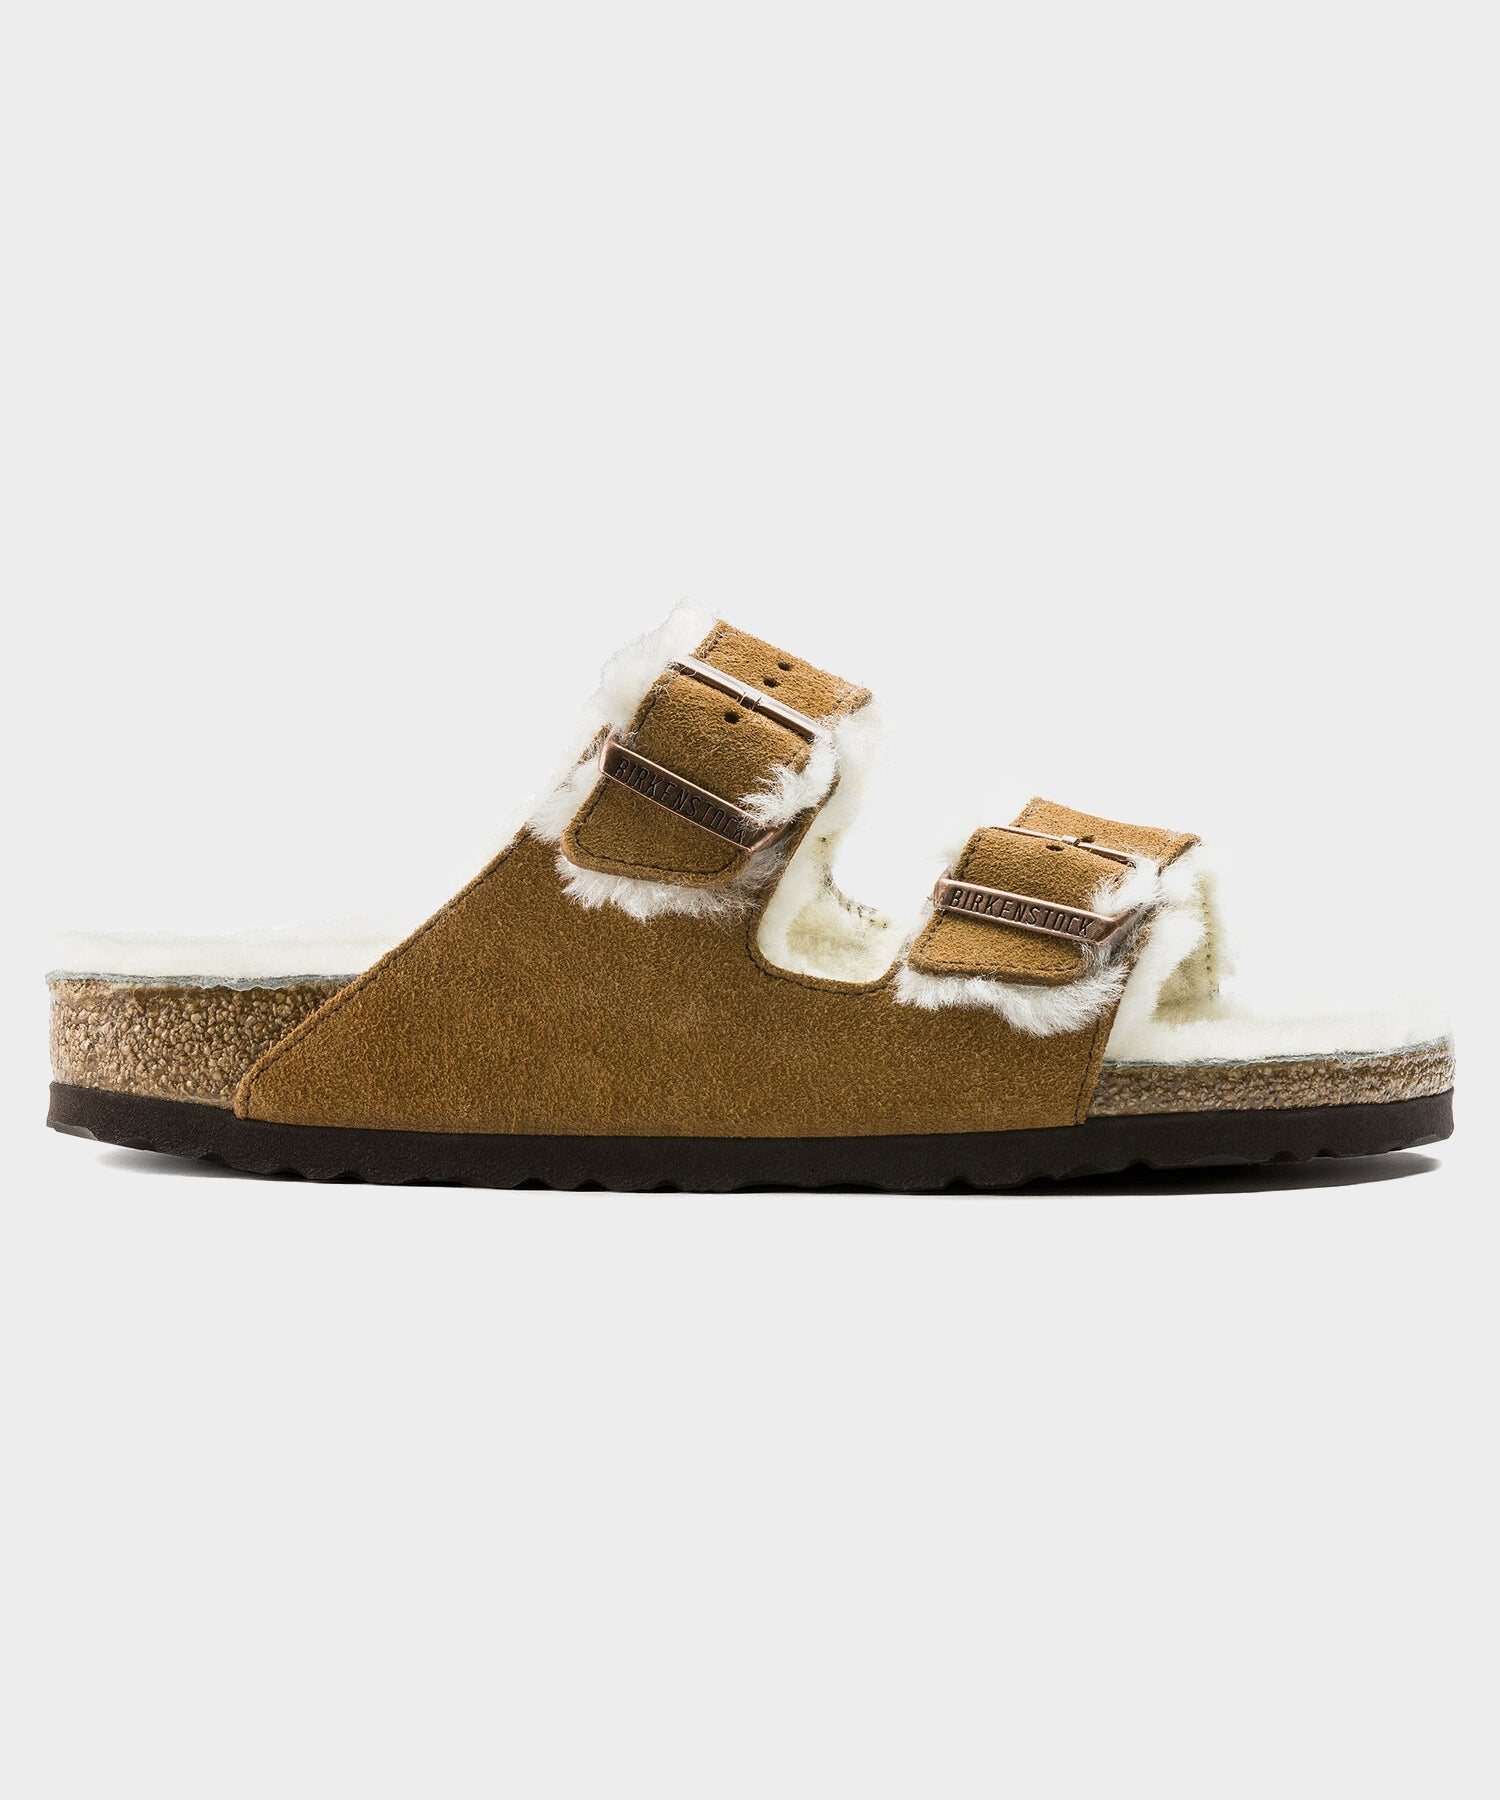 Birkenstock Arizona in Mink Shearling